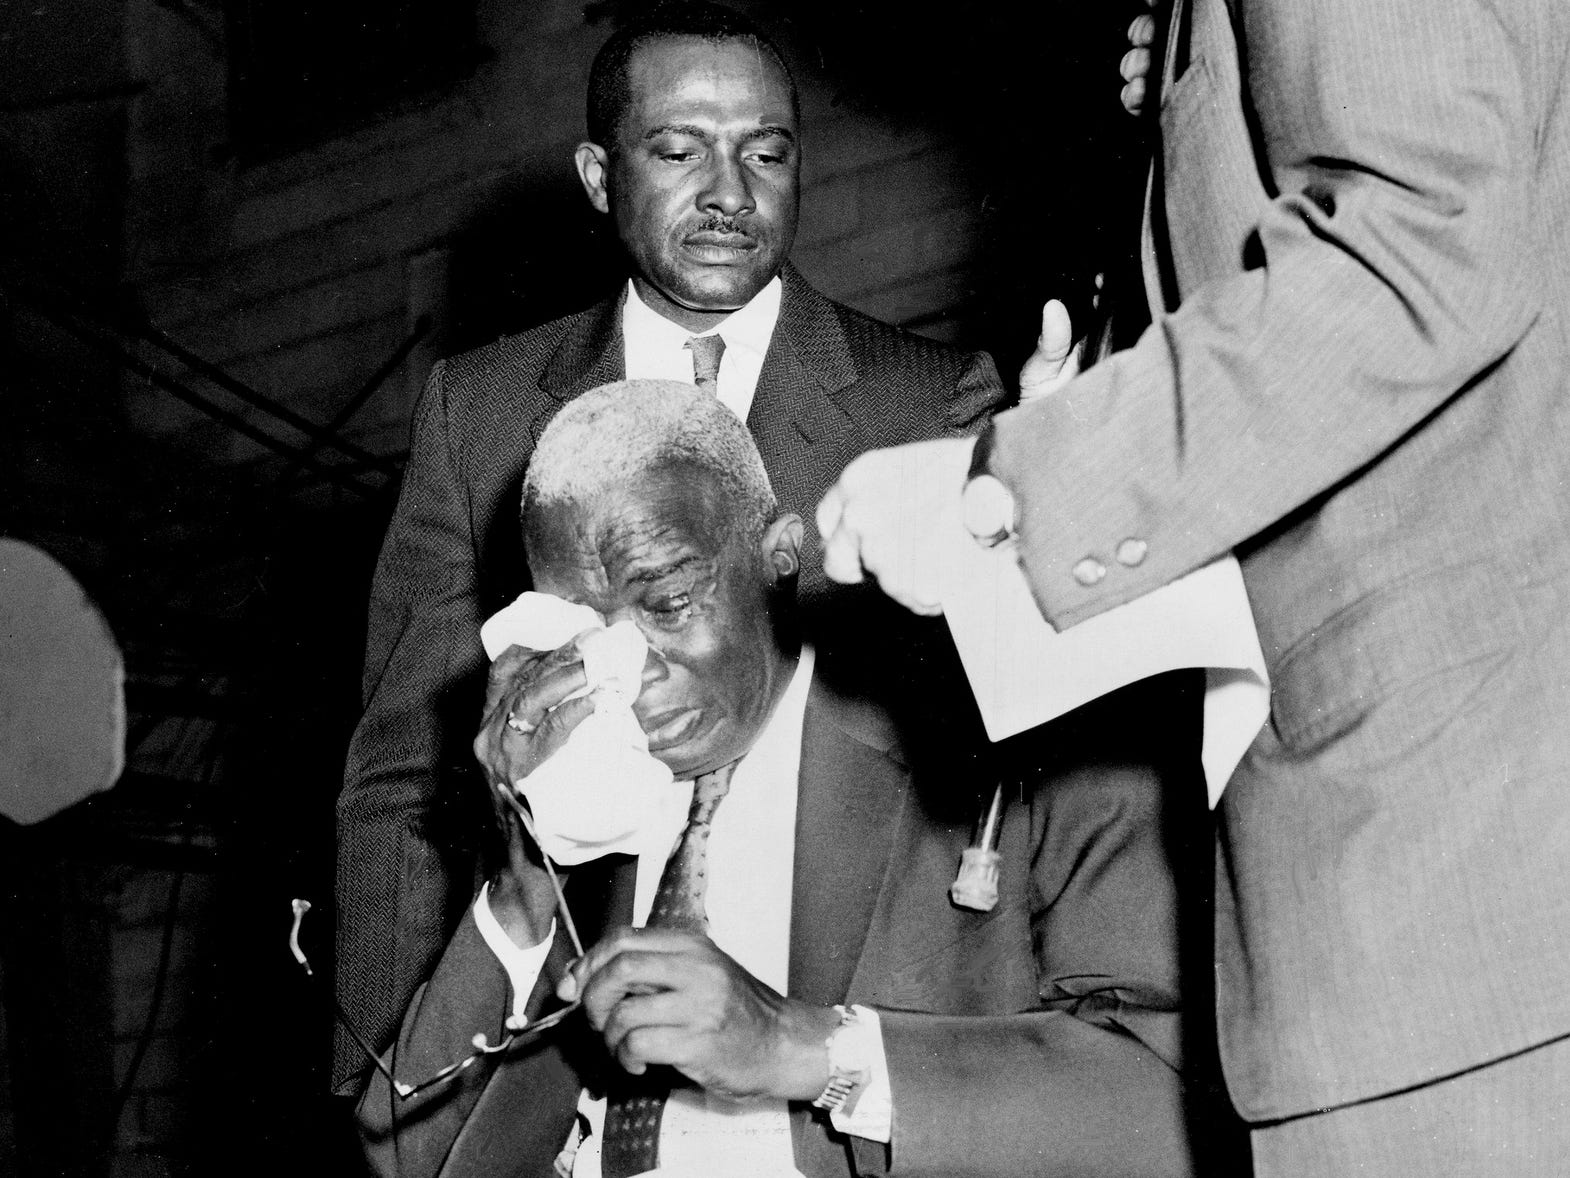 Nashville City Councilman Z. Alexander Looby, his home bombed the night before, collapses weeping in a chair as he receives a prolonged ovation April 20, 1960, from the crowd at a rally that included Dr. Martin Luther King Jr. Standing behind Looby is the Rev. Andrew White.